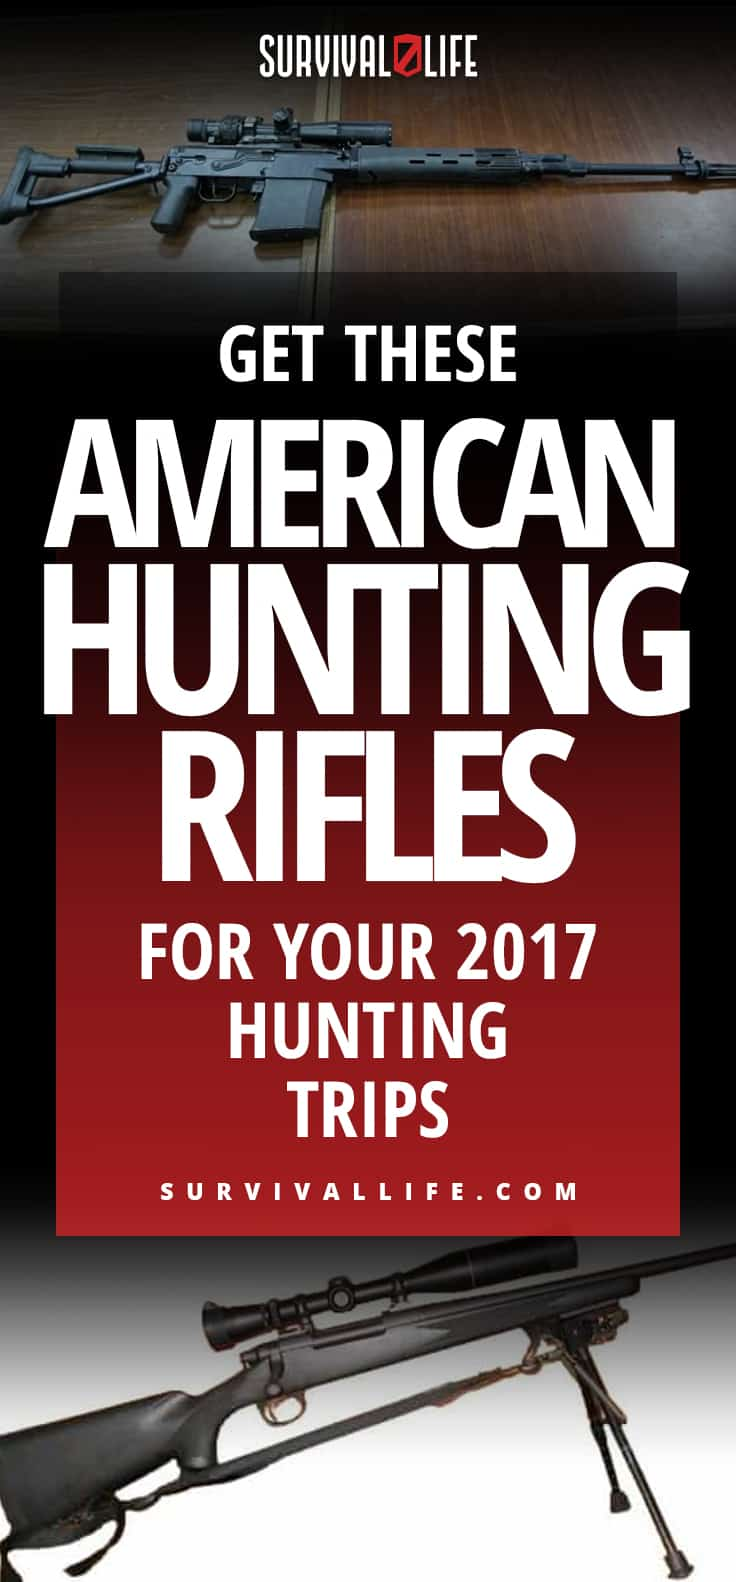 Get These American Hunting Rifles For Your 2017 Hunting Trips